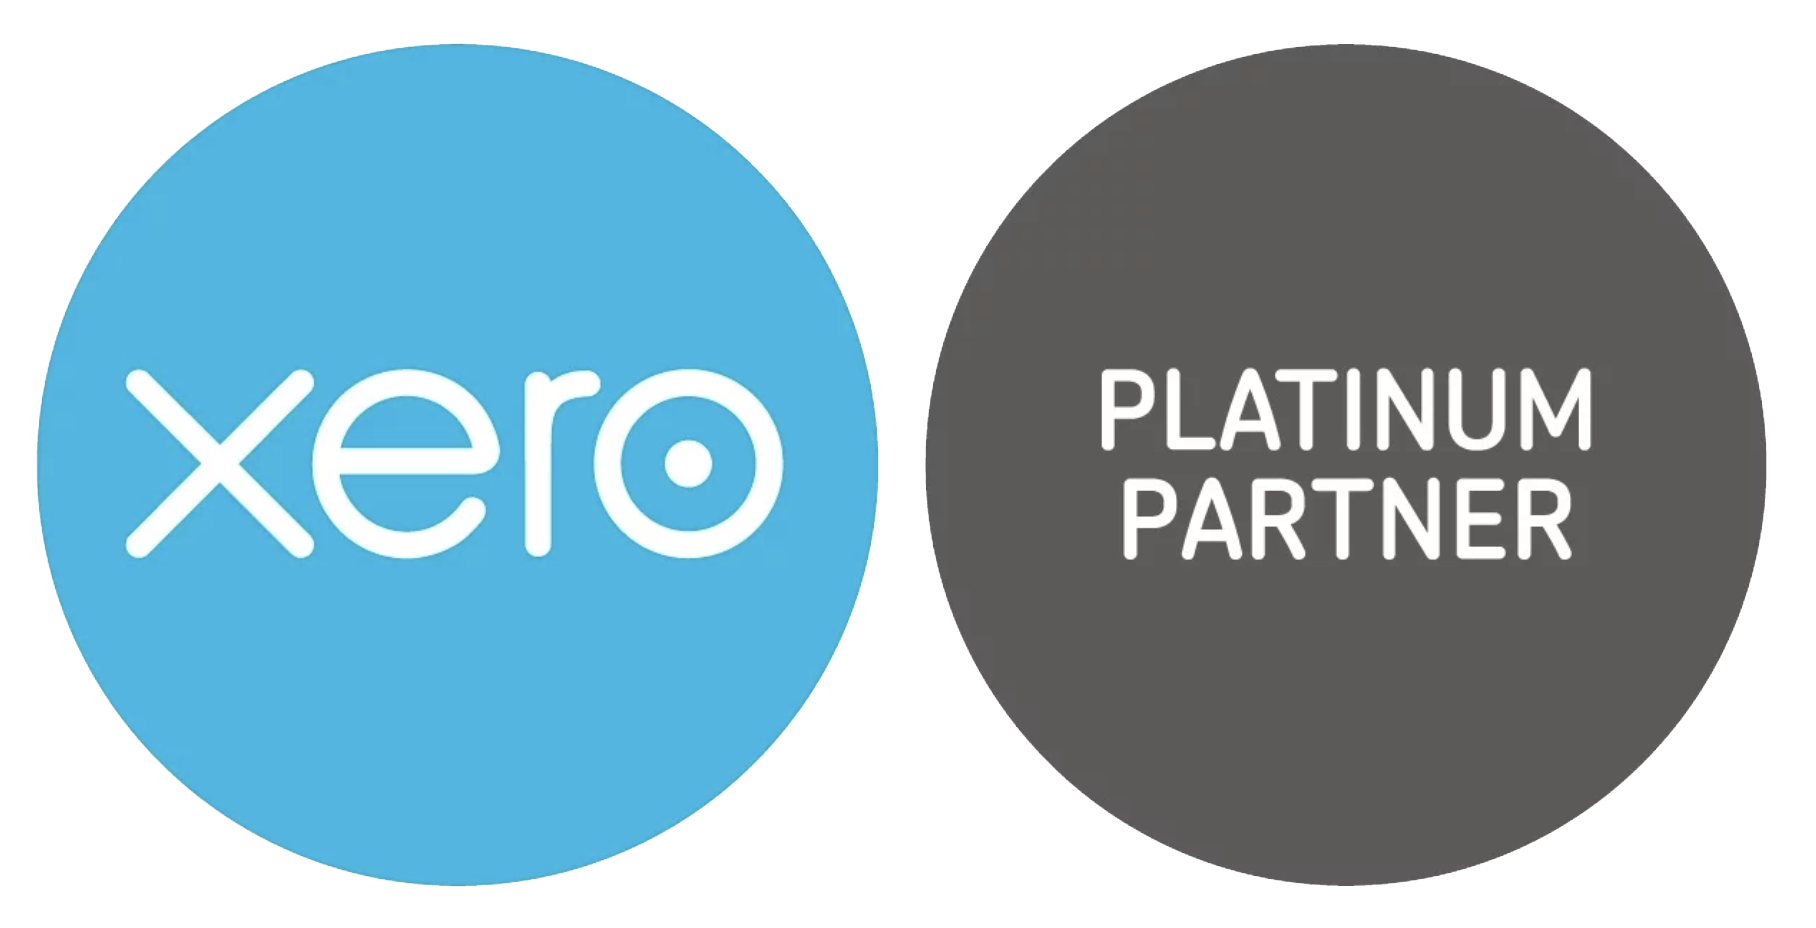 Green Accounting have attained platinum partner status with Xero!